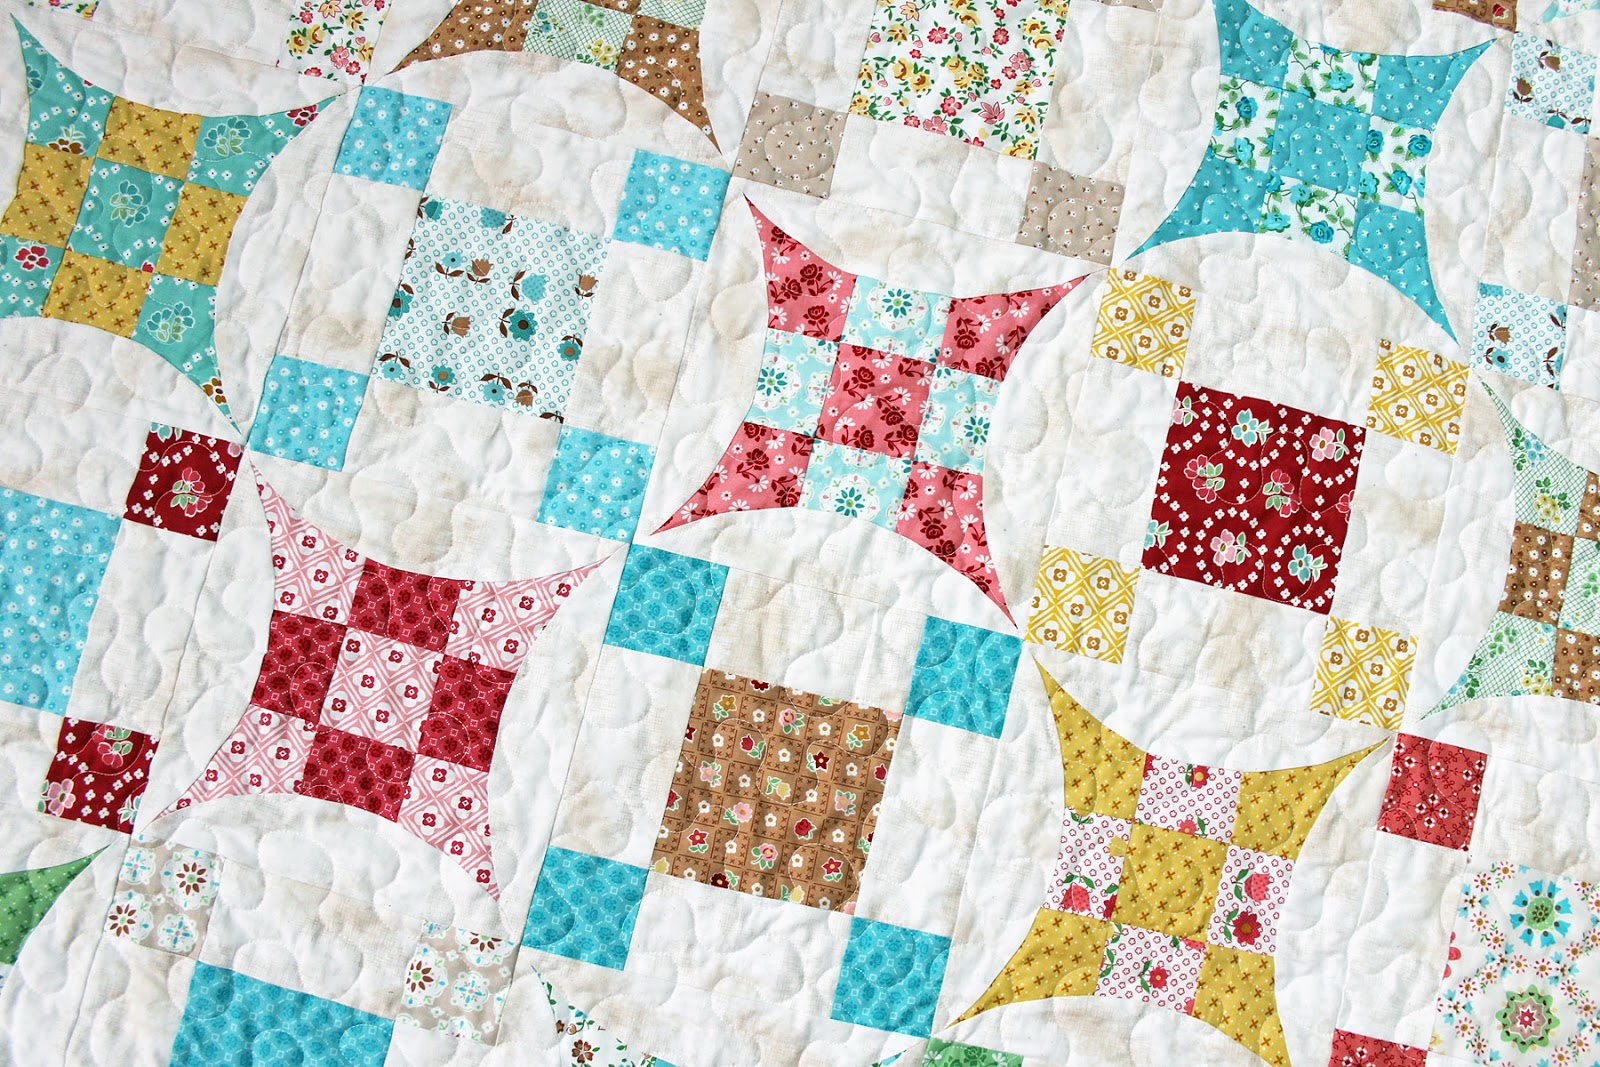 Glorified Nine Patch quilt with red, gold, teal and white fabric.